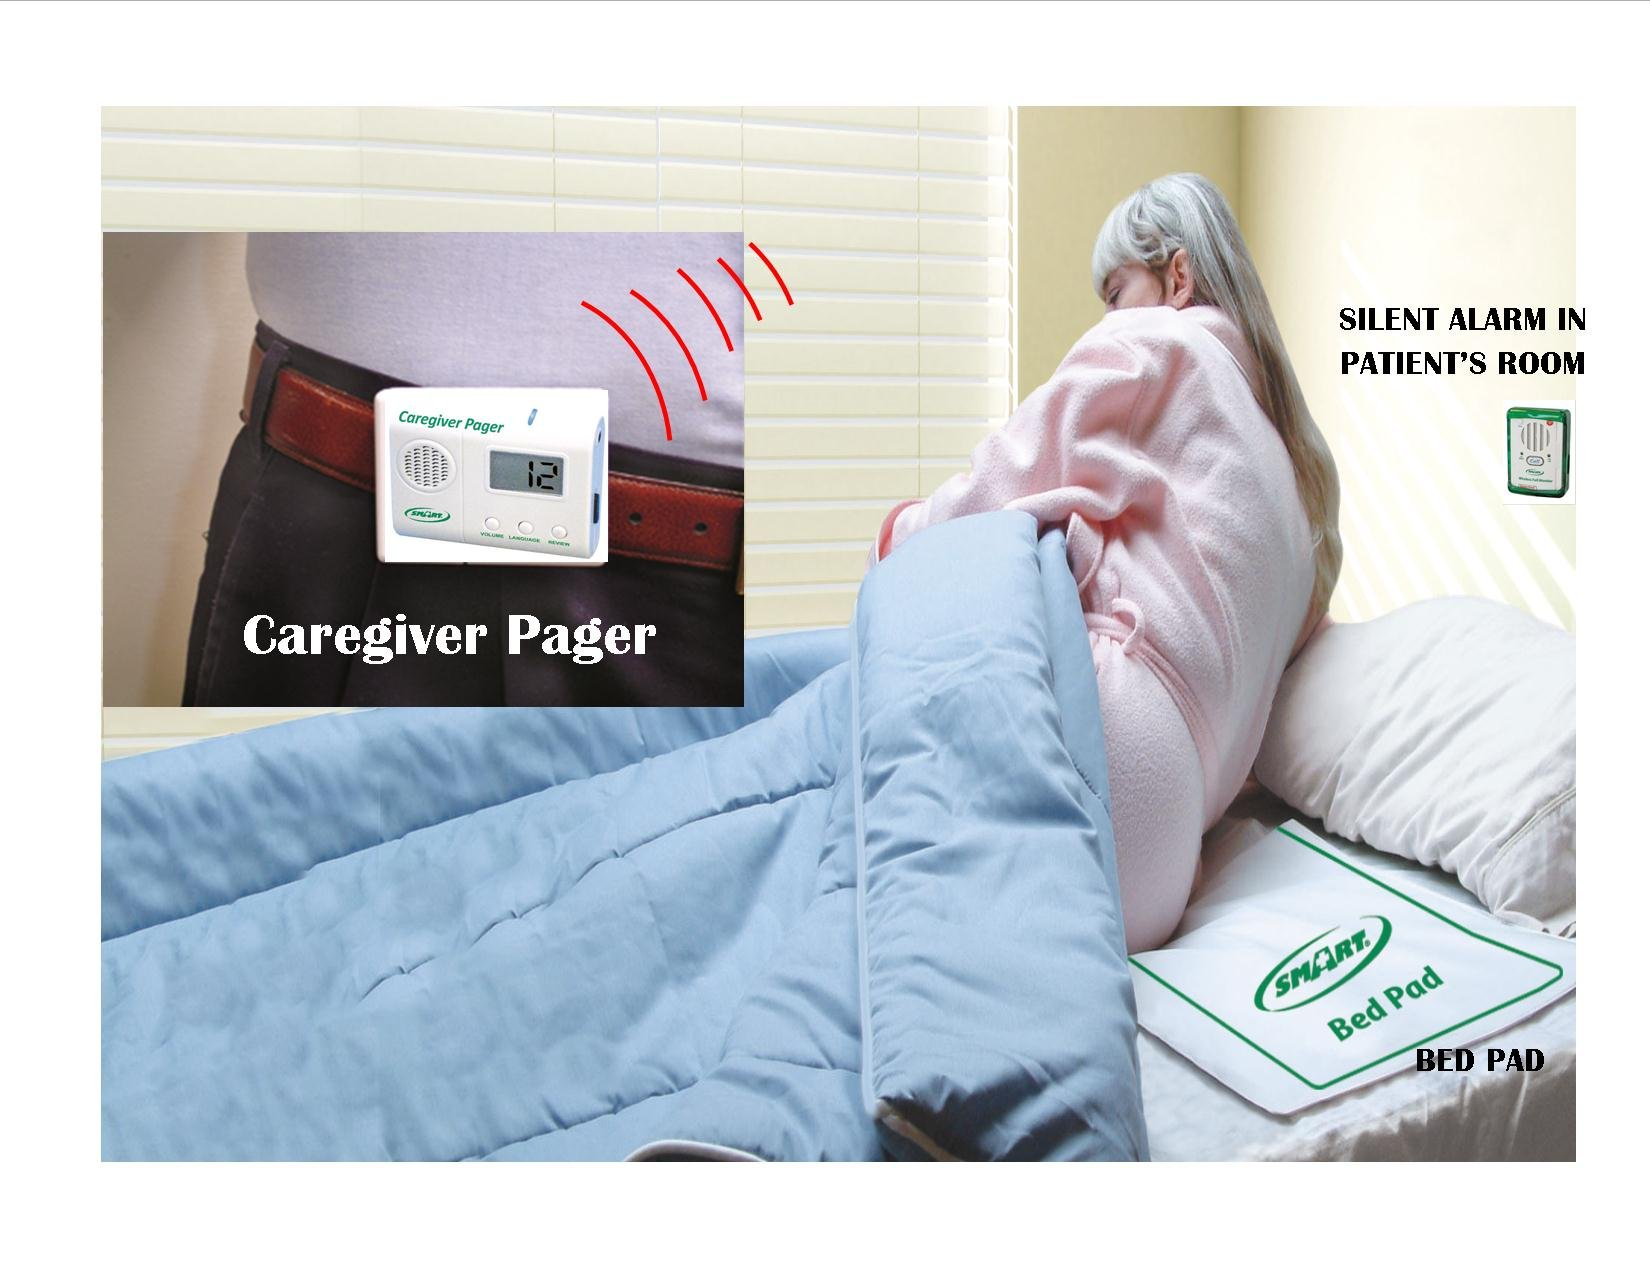 Smart Caregiver Wireless Monitor, Bed Pad and Pager